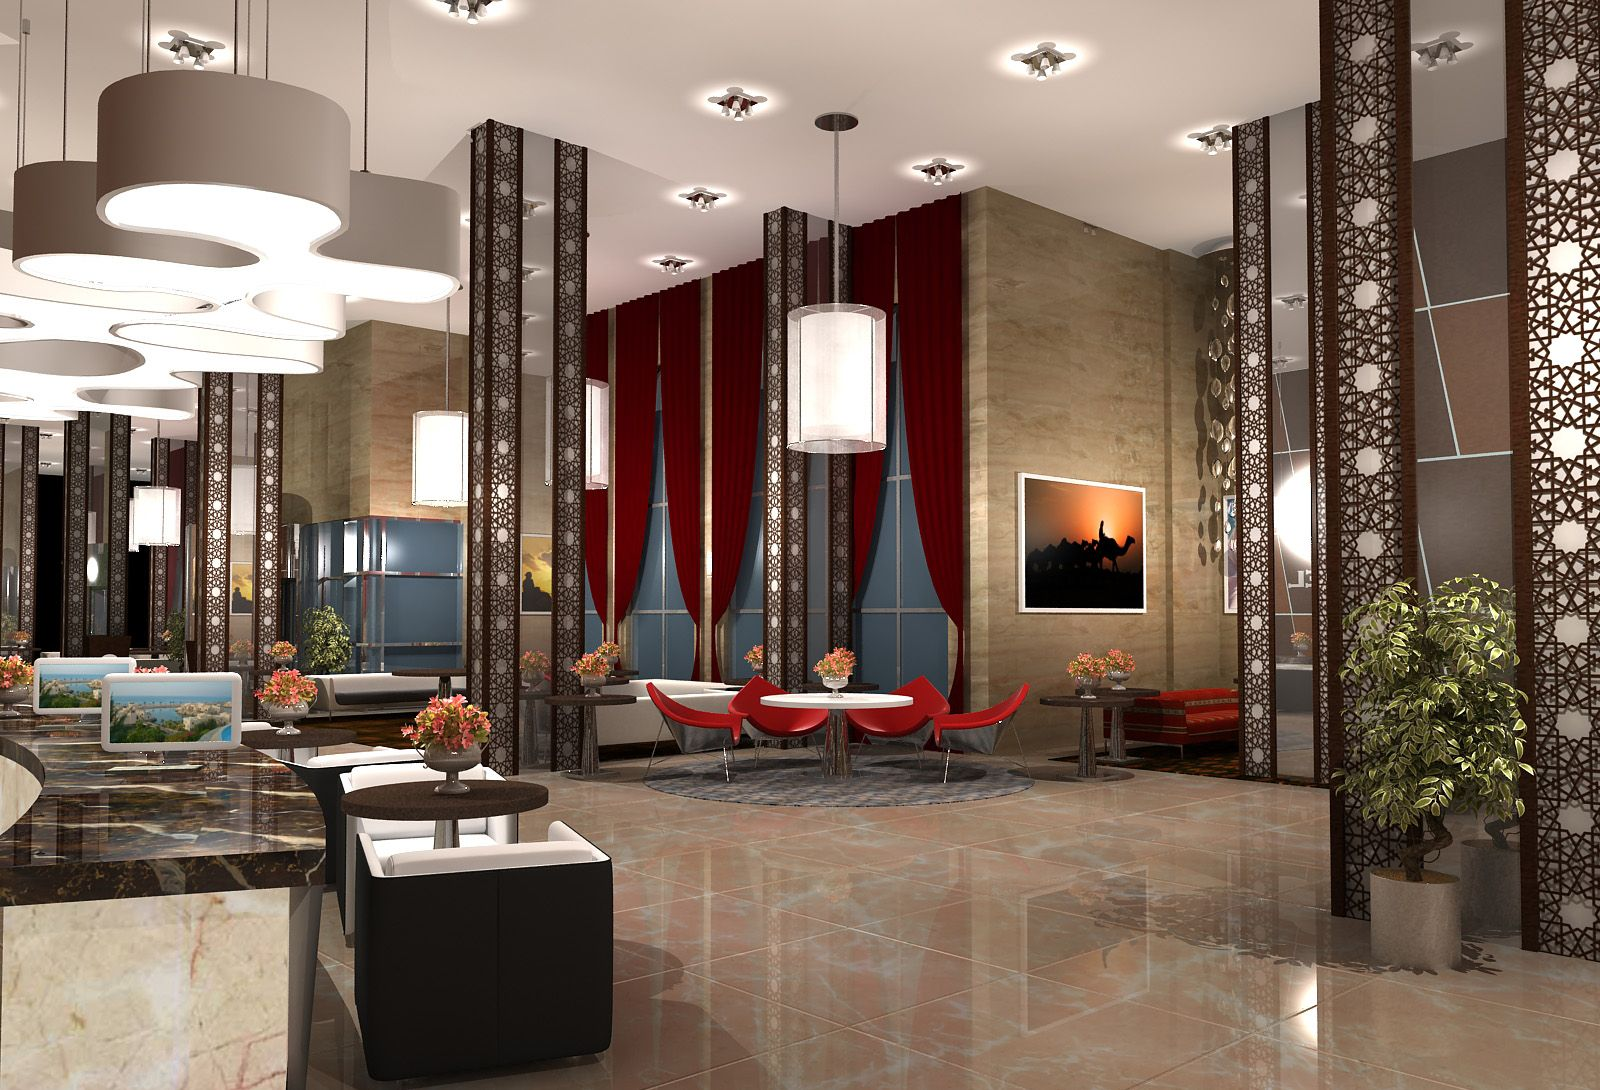 the first ferry manazil five star hotel lobby design